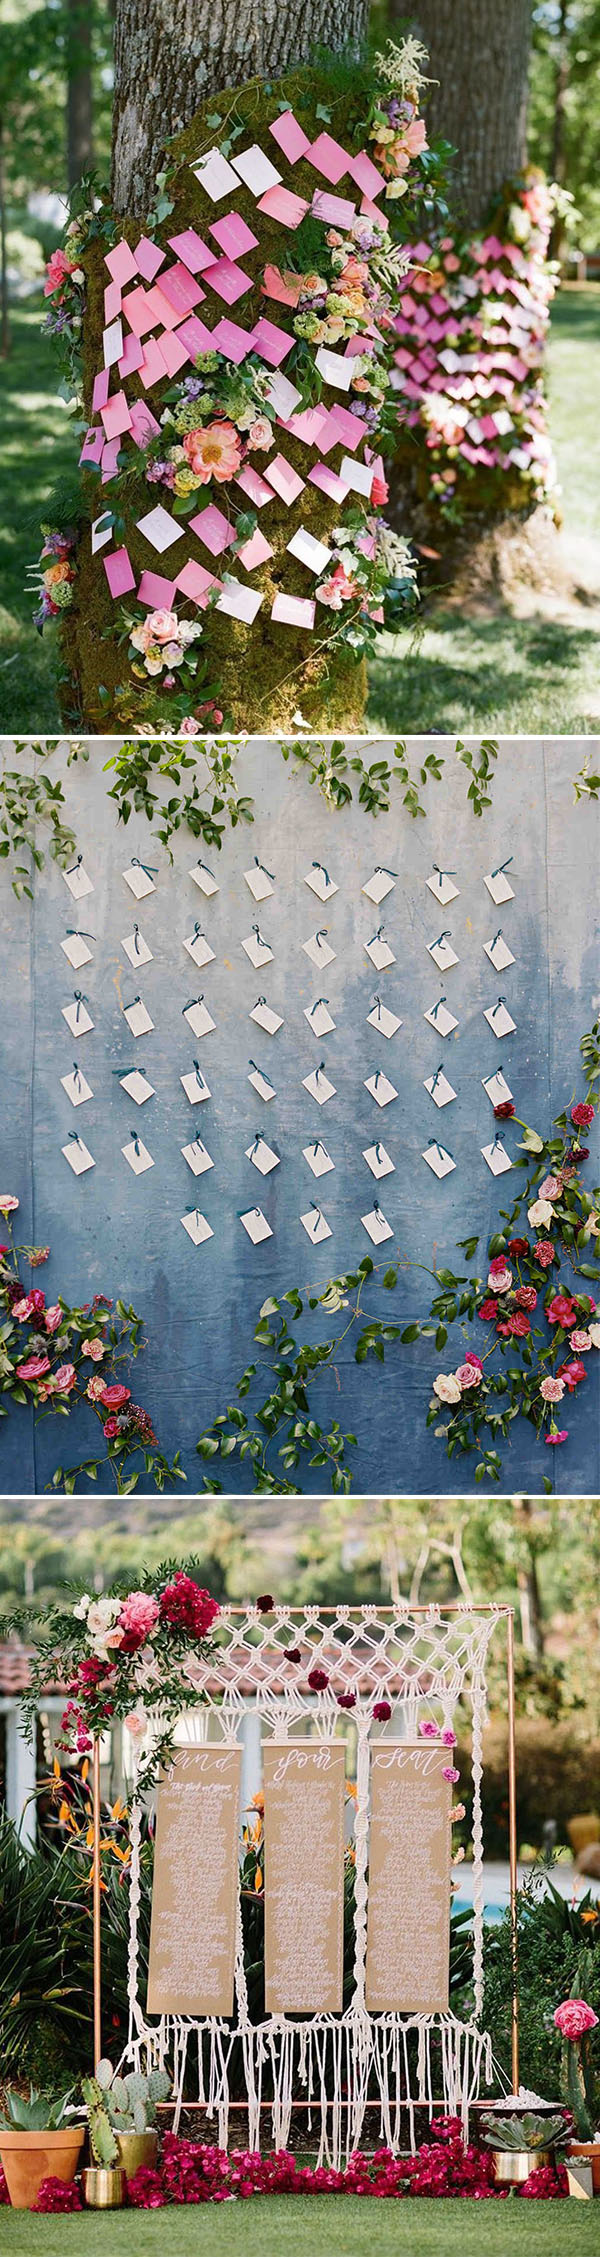 Colorful flower decorated wedding escort card board ideas